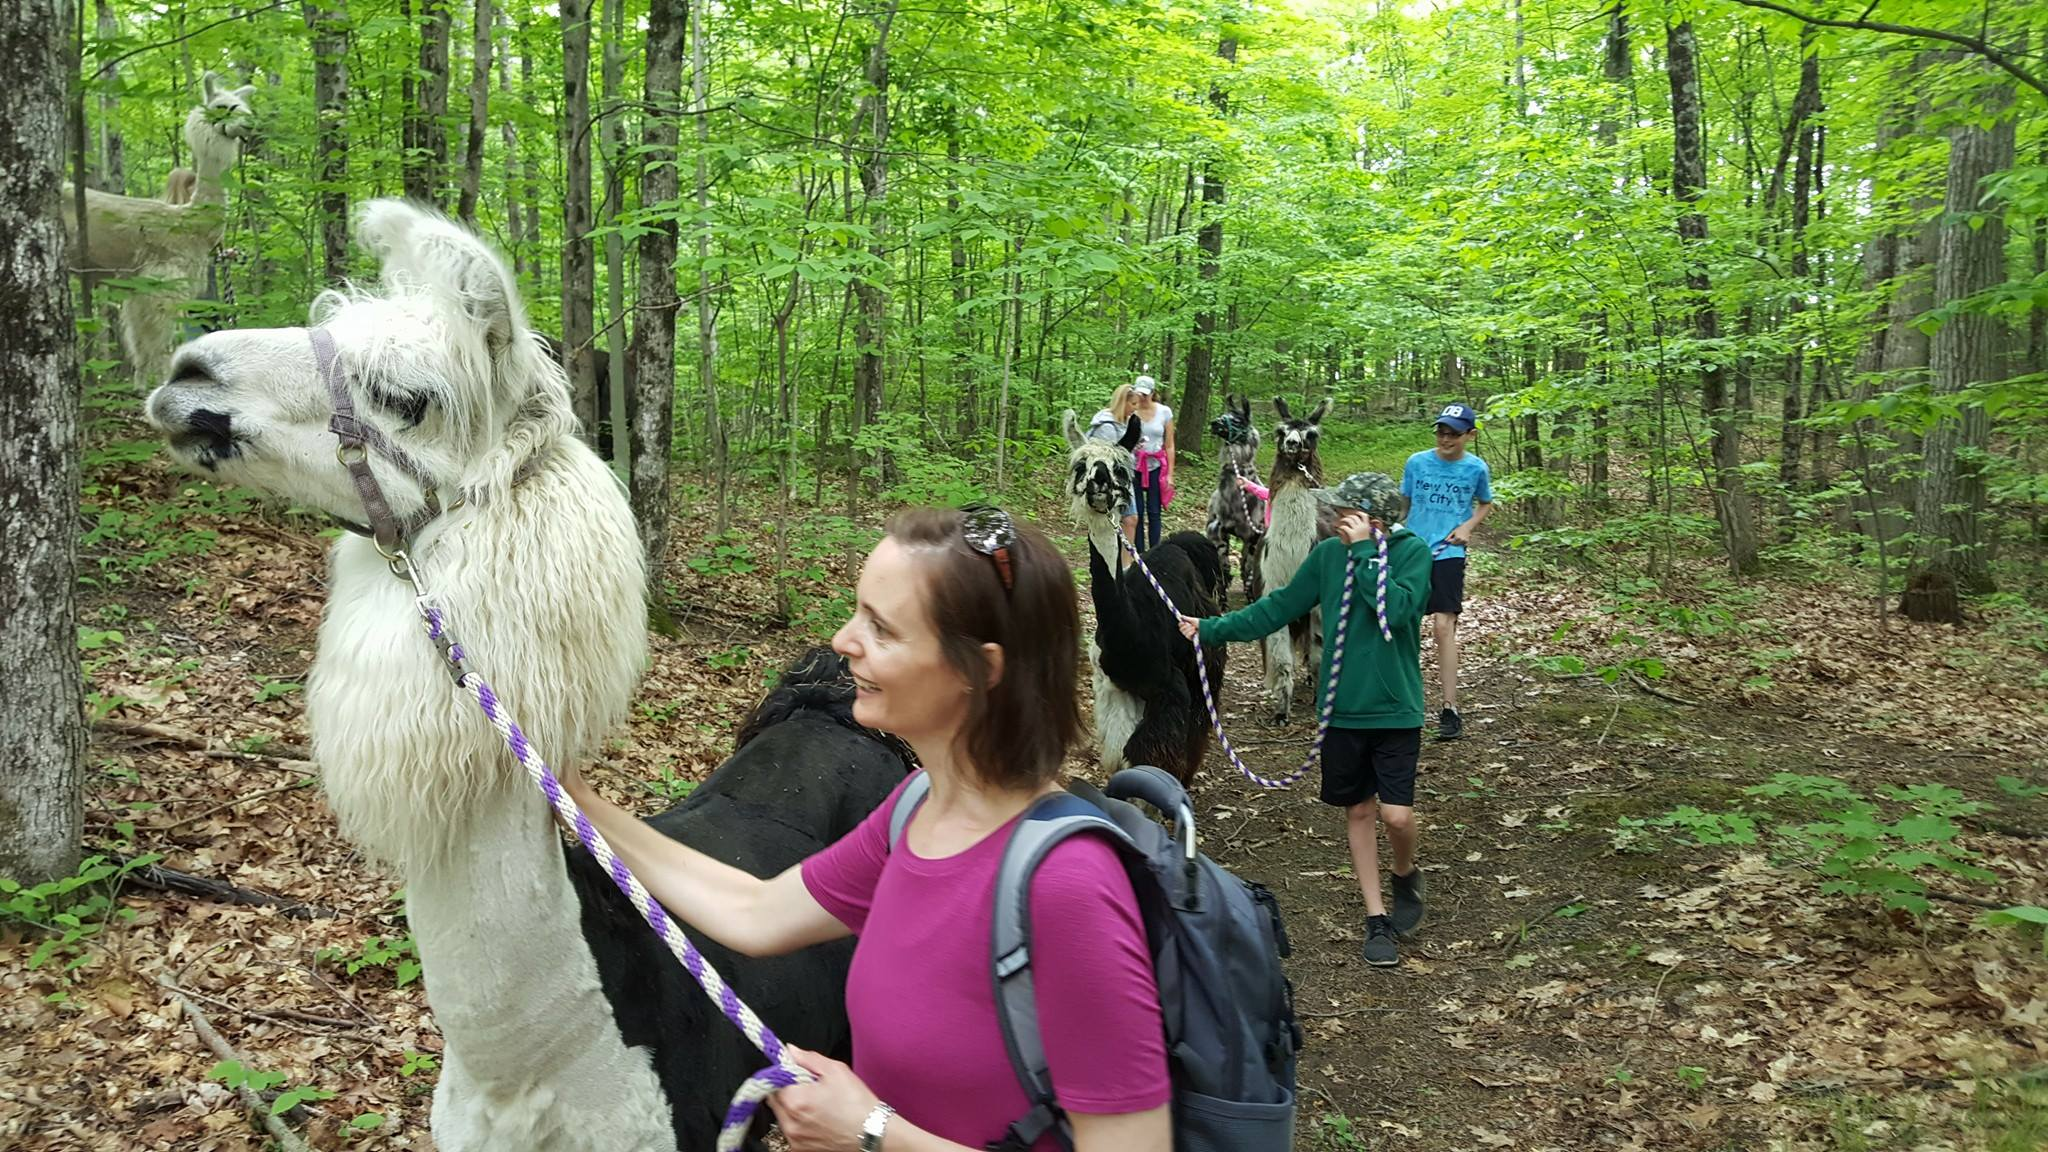 Go Hiking With Llamas In New York For An Adventure Unlike Any Other